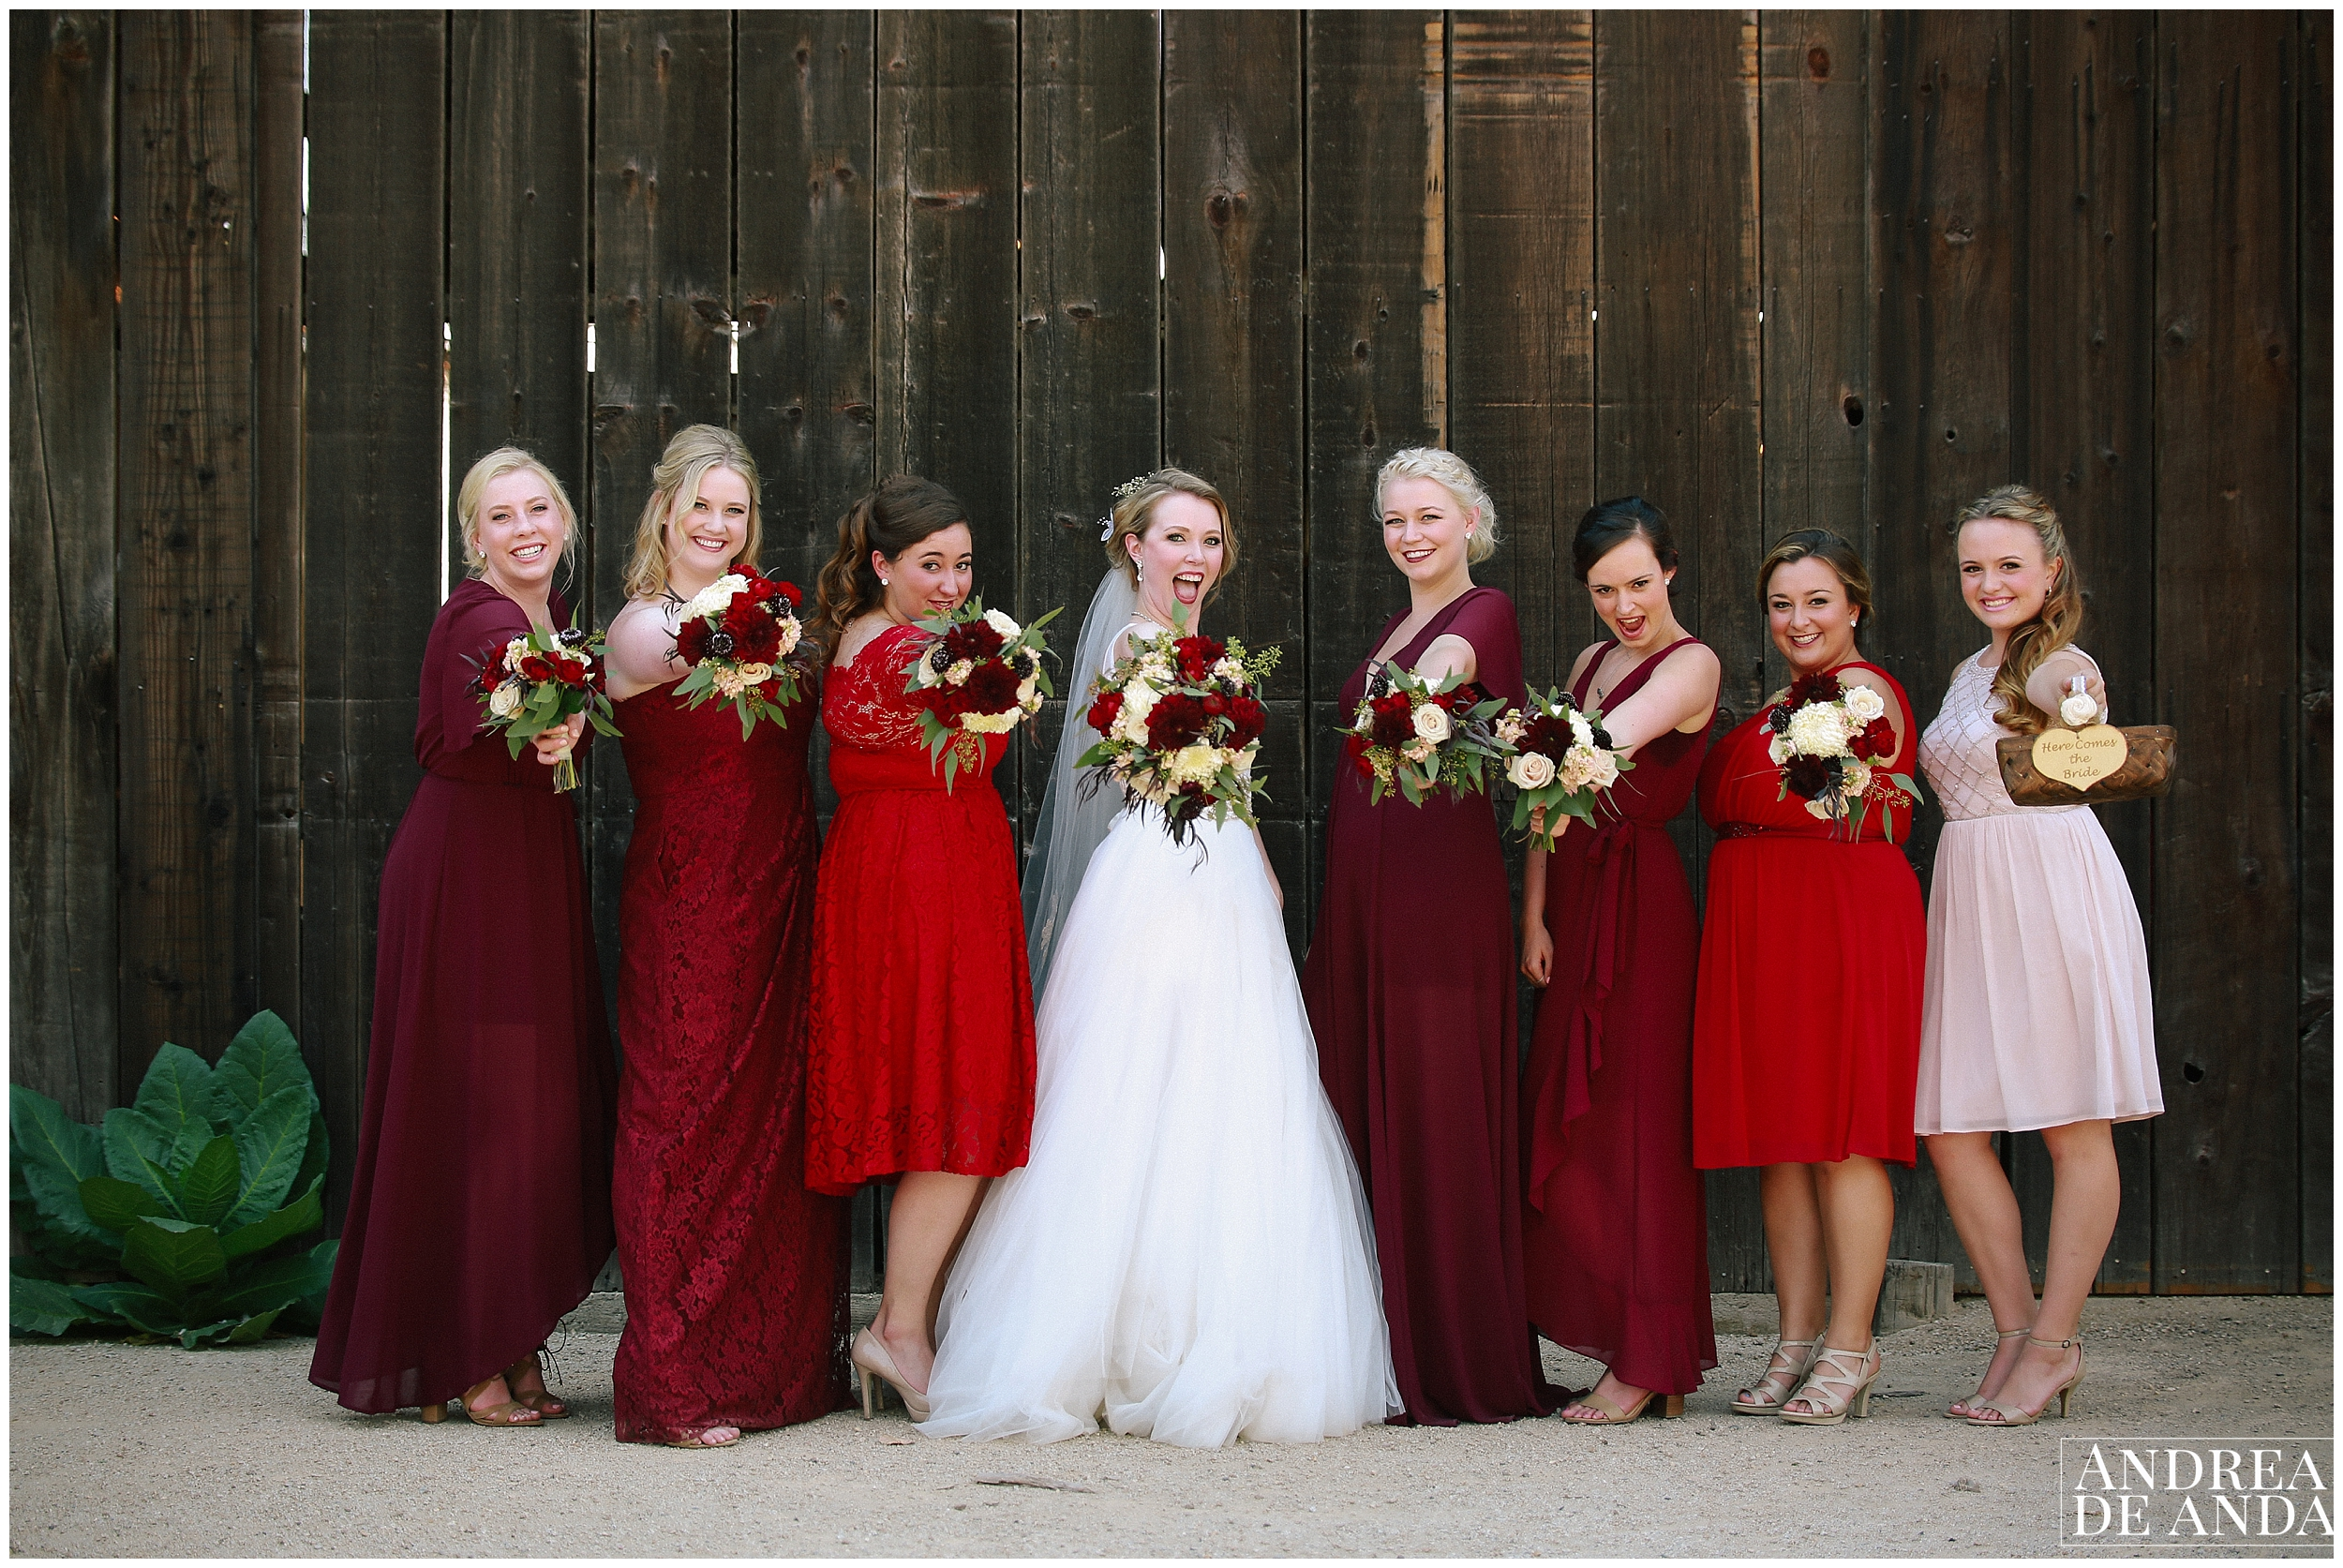 Bride and Bridesmaids photo session at Dana Powers House & Barn